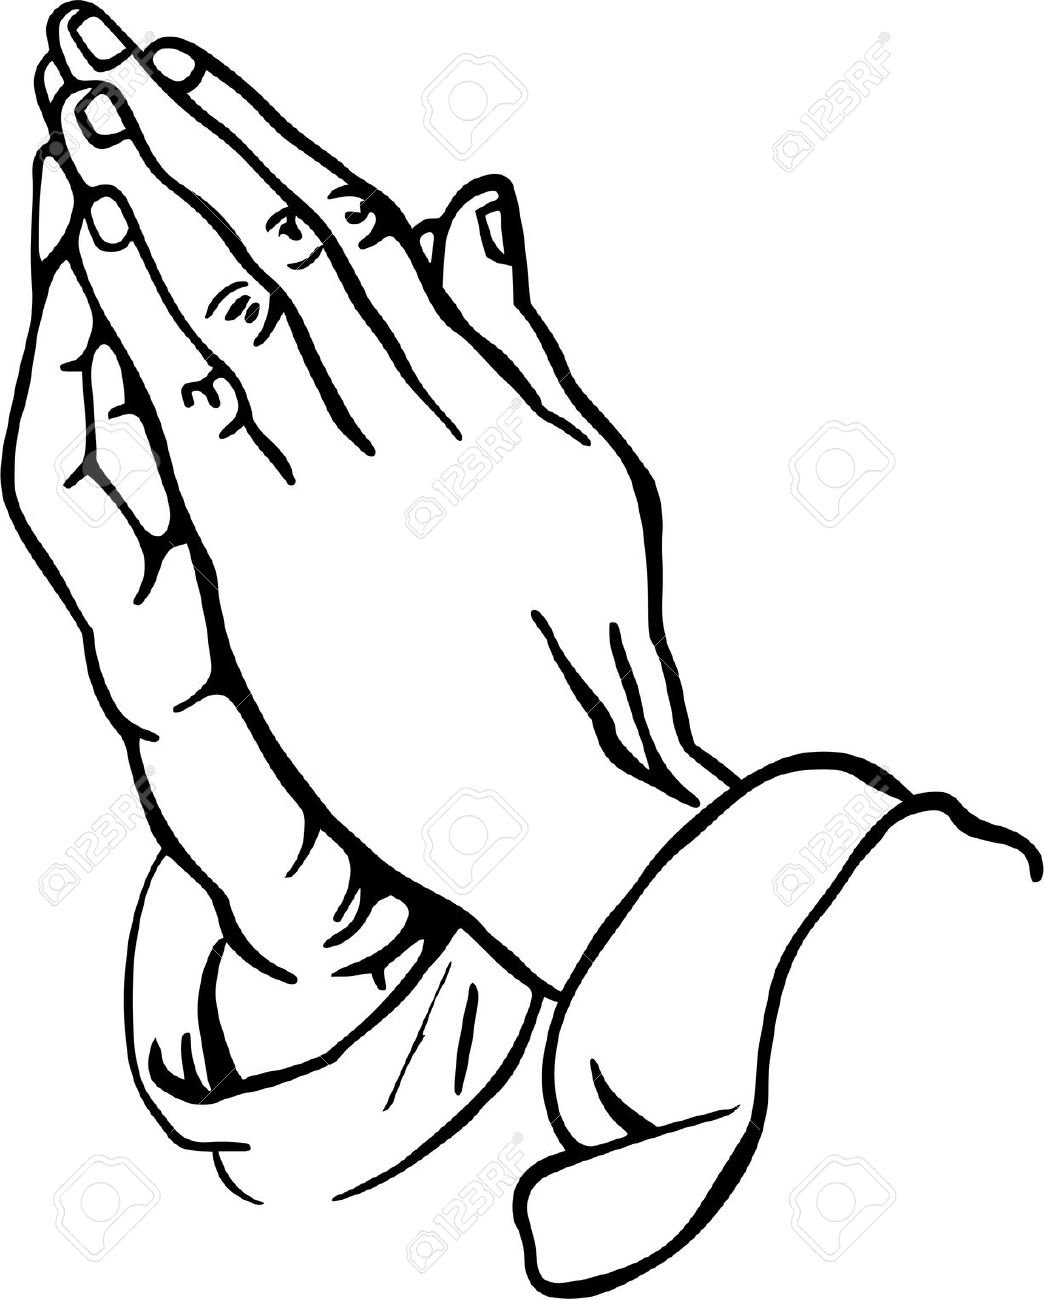 Praying Hands Clipart Stock Photo - 30674437